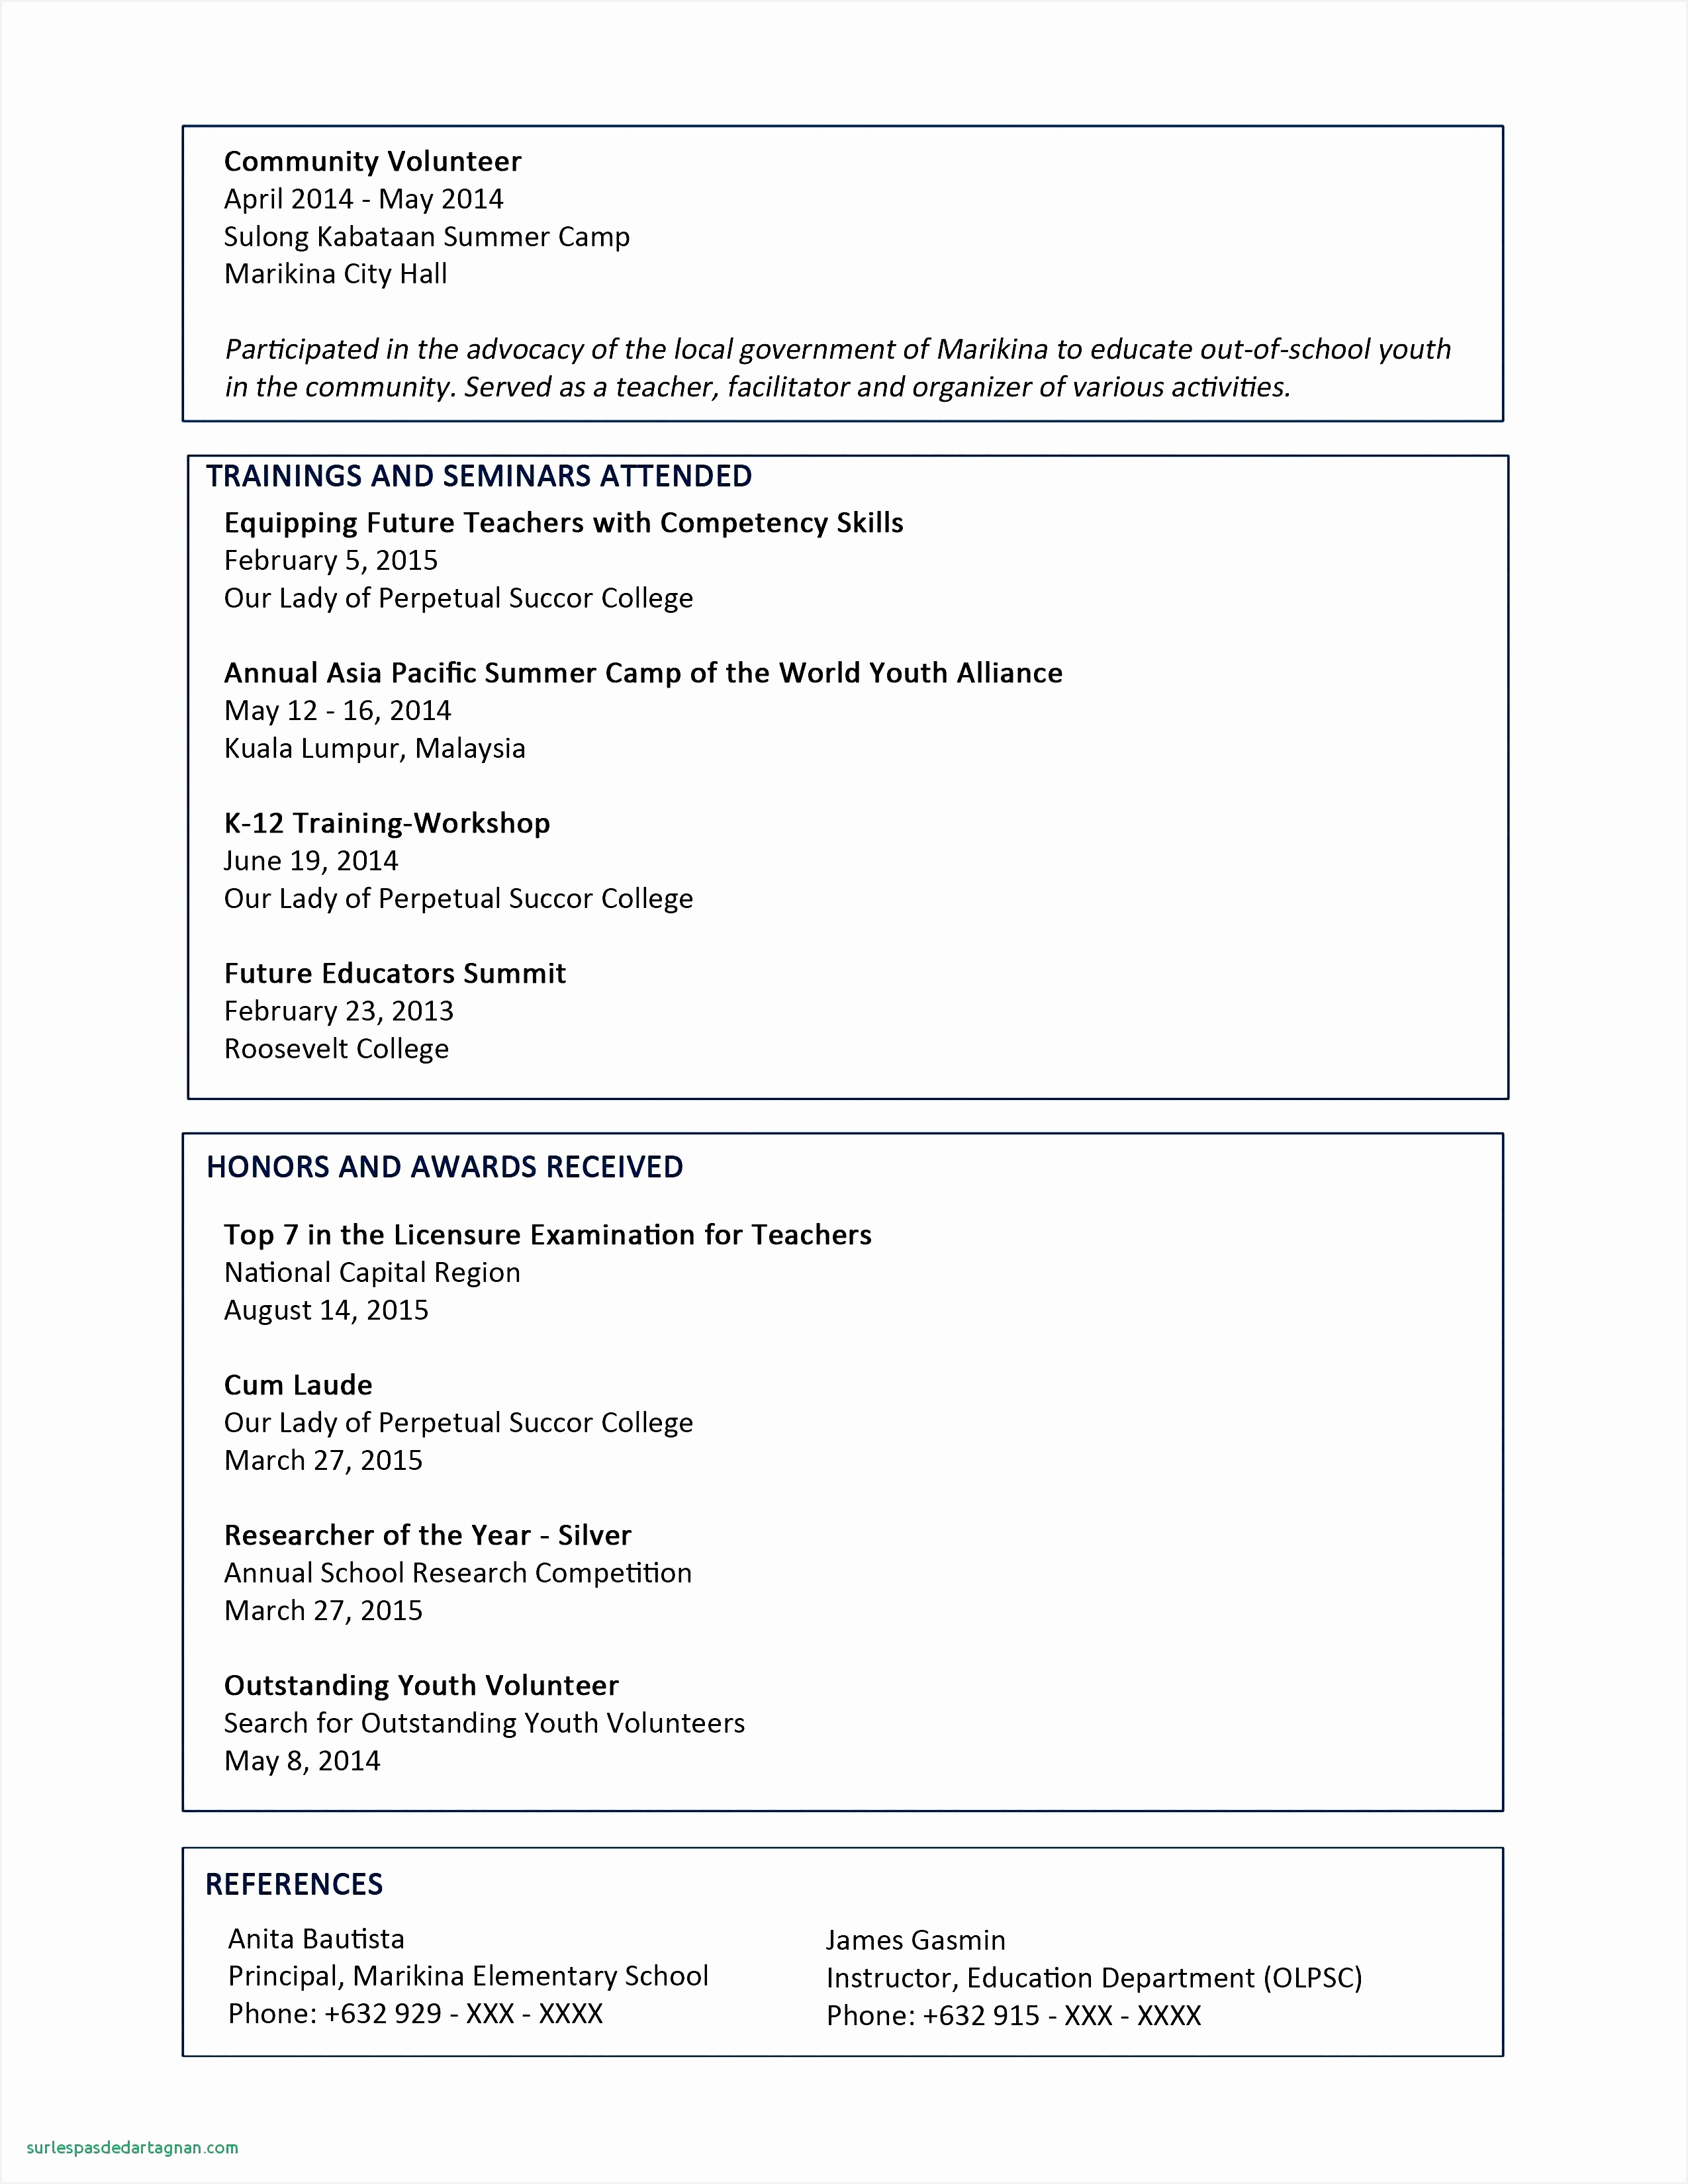 Free Resume Templates For Students Fresh Inspirational Resume For Highschool Students Excellent Resumes 0d33002550